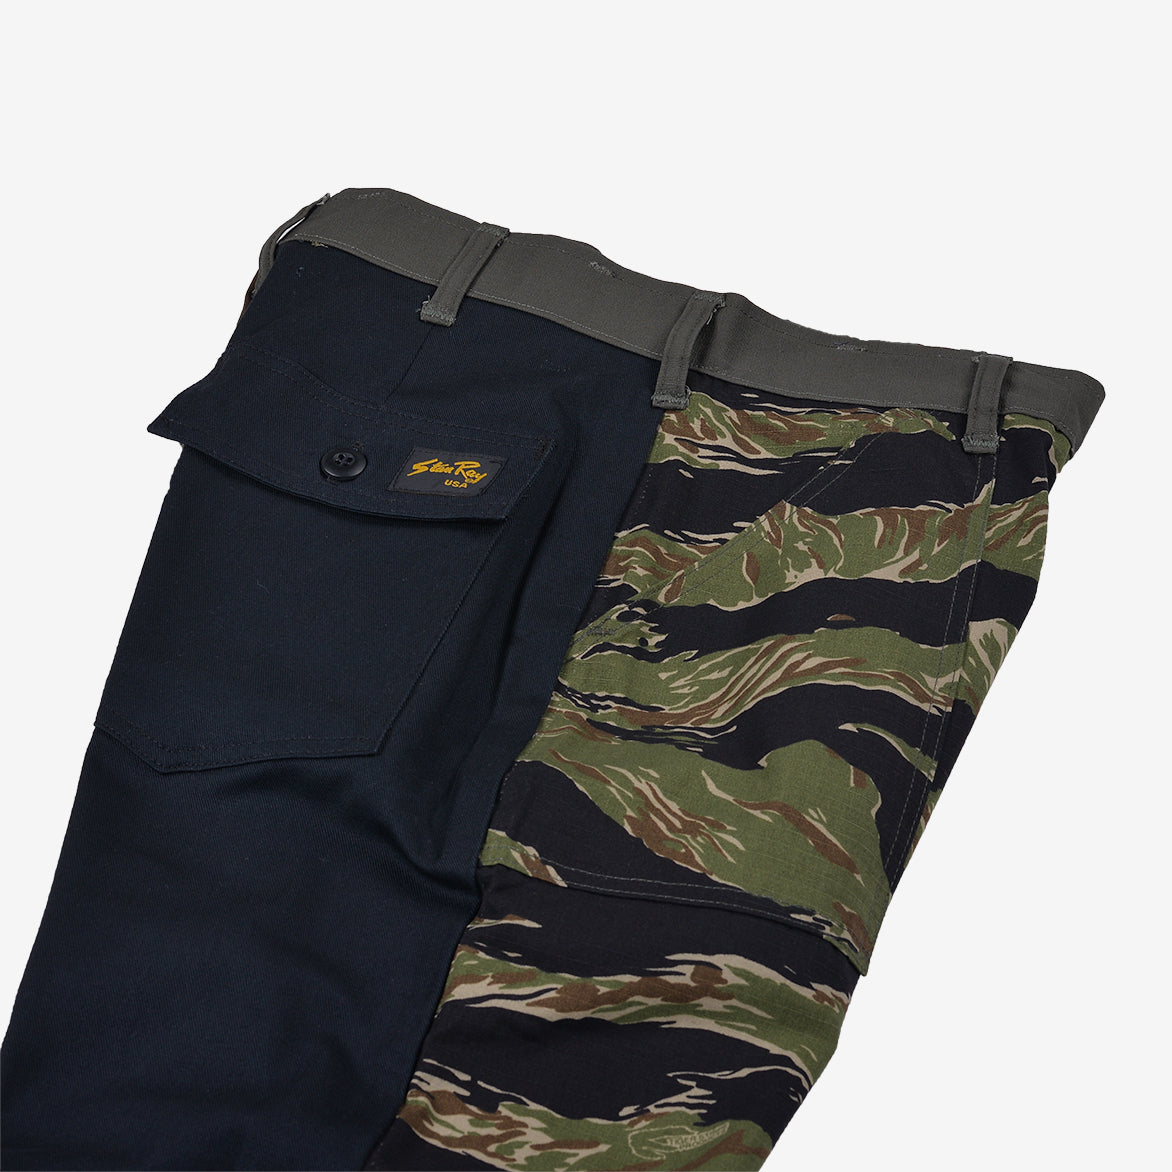 RECONSTRUCT TAPER FATIGUE PANT - TIGER / NATURAL (6)